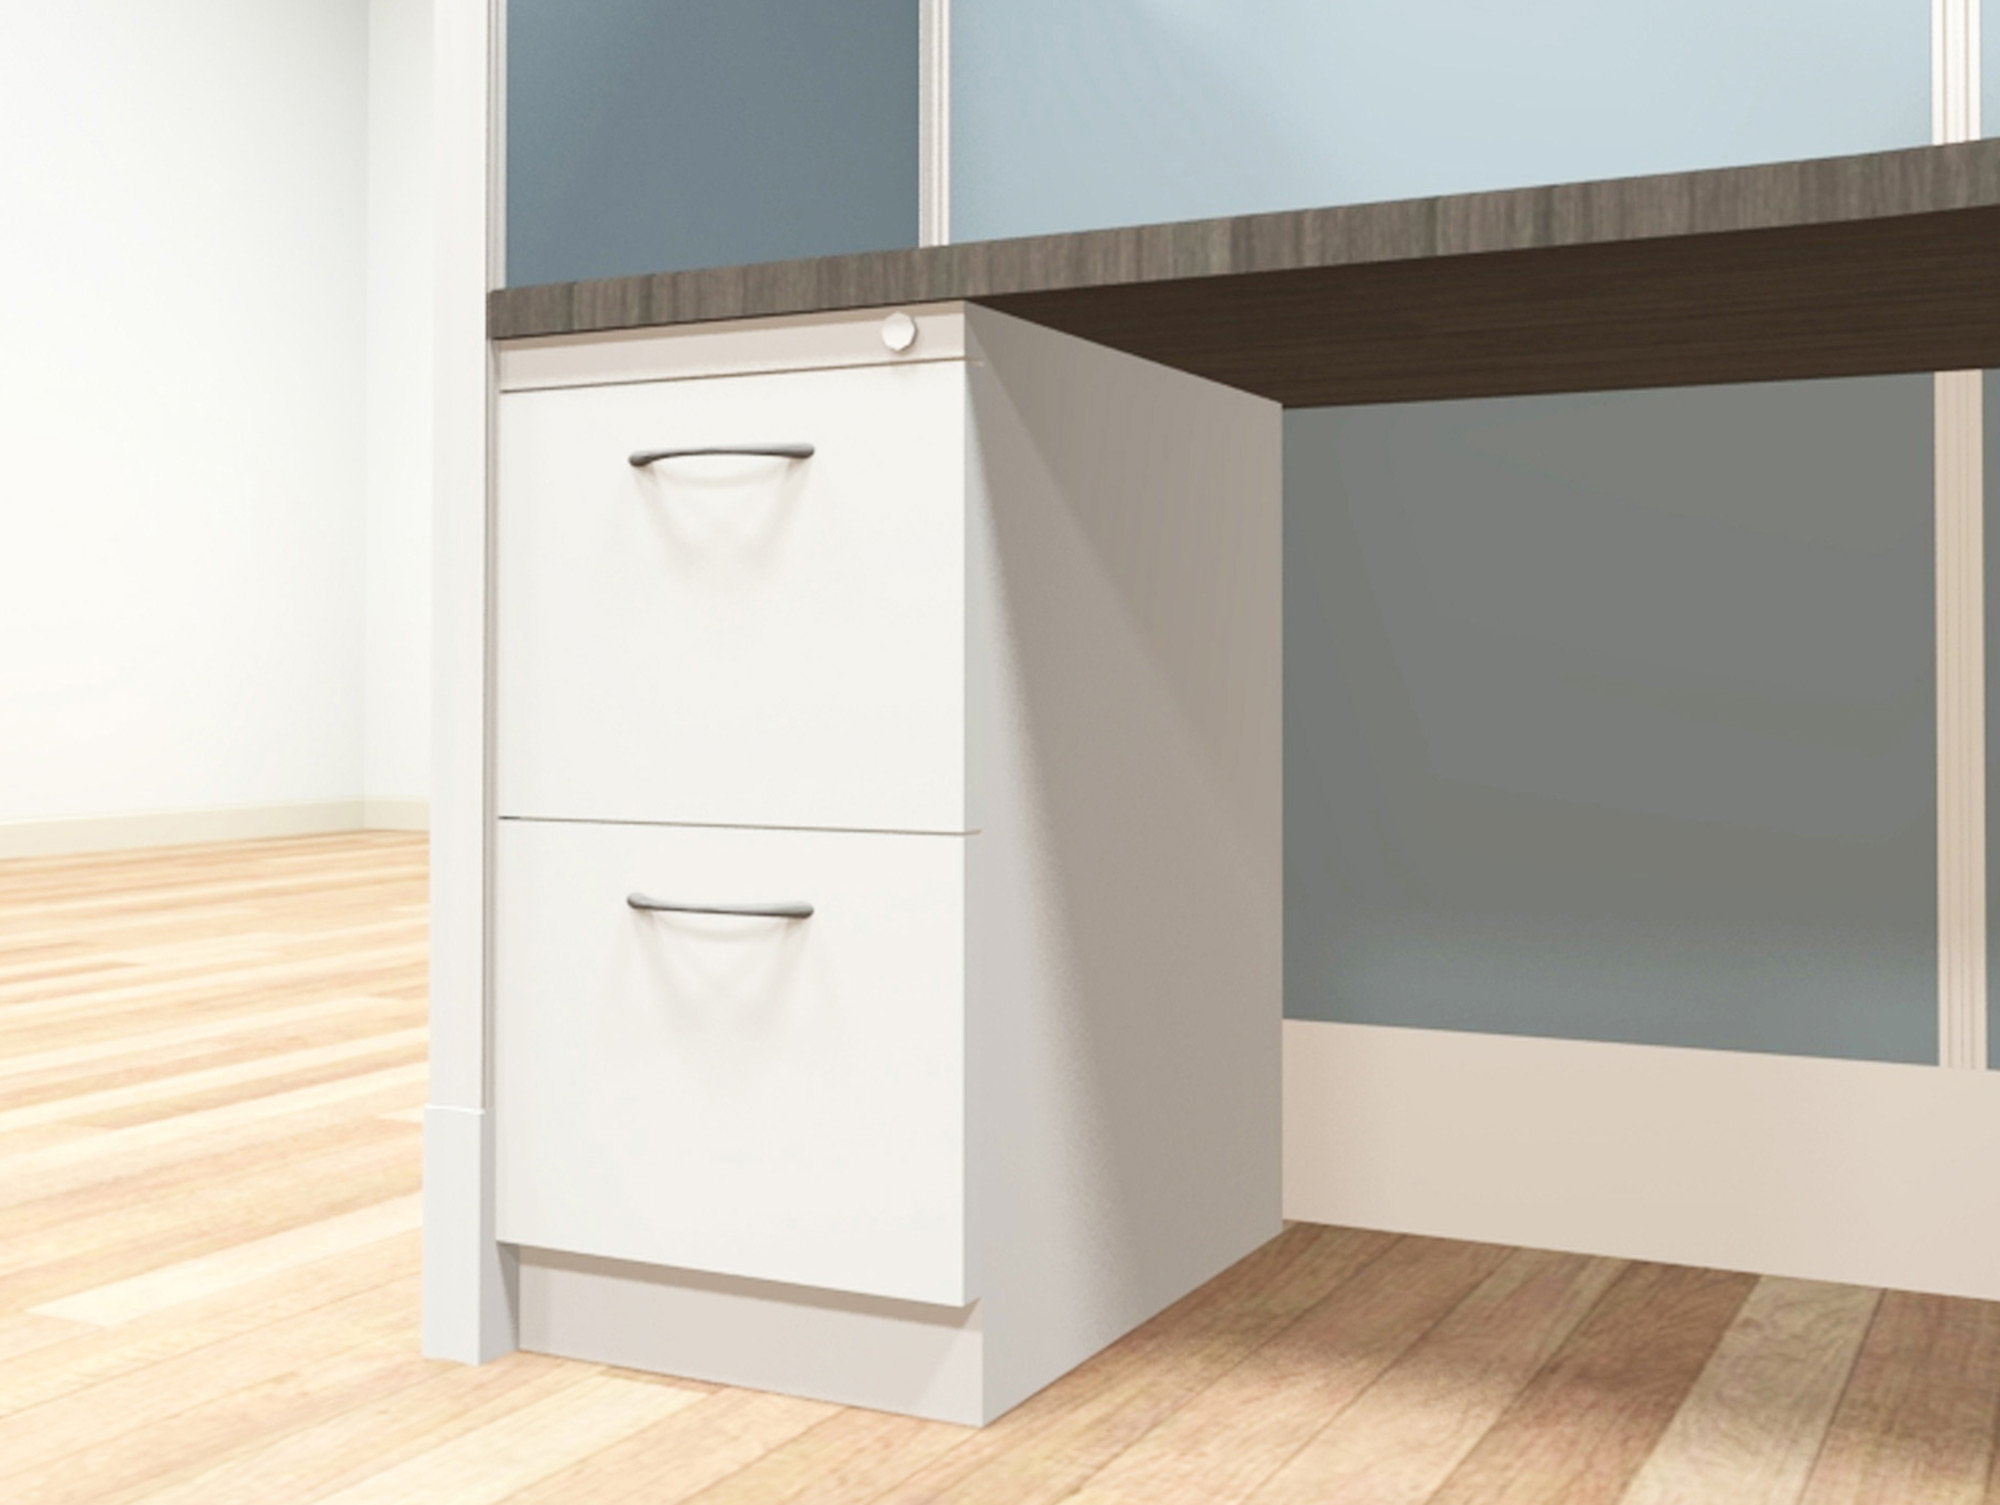 8x8 modular workstations from AIS - a �file-file� pedestal is an under-surface storage cabinet with two deep drawers designed for hanging files. Lock and key secures all drawers from unwanted visitors.